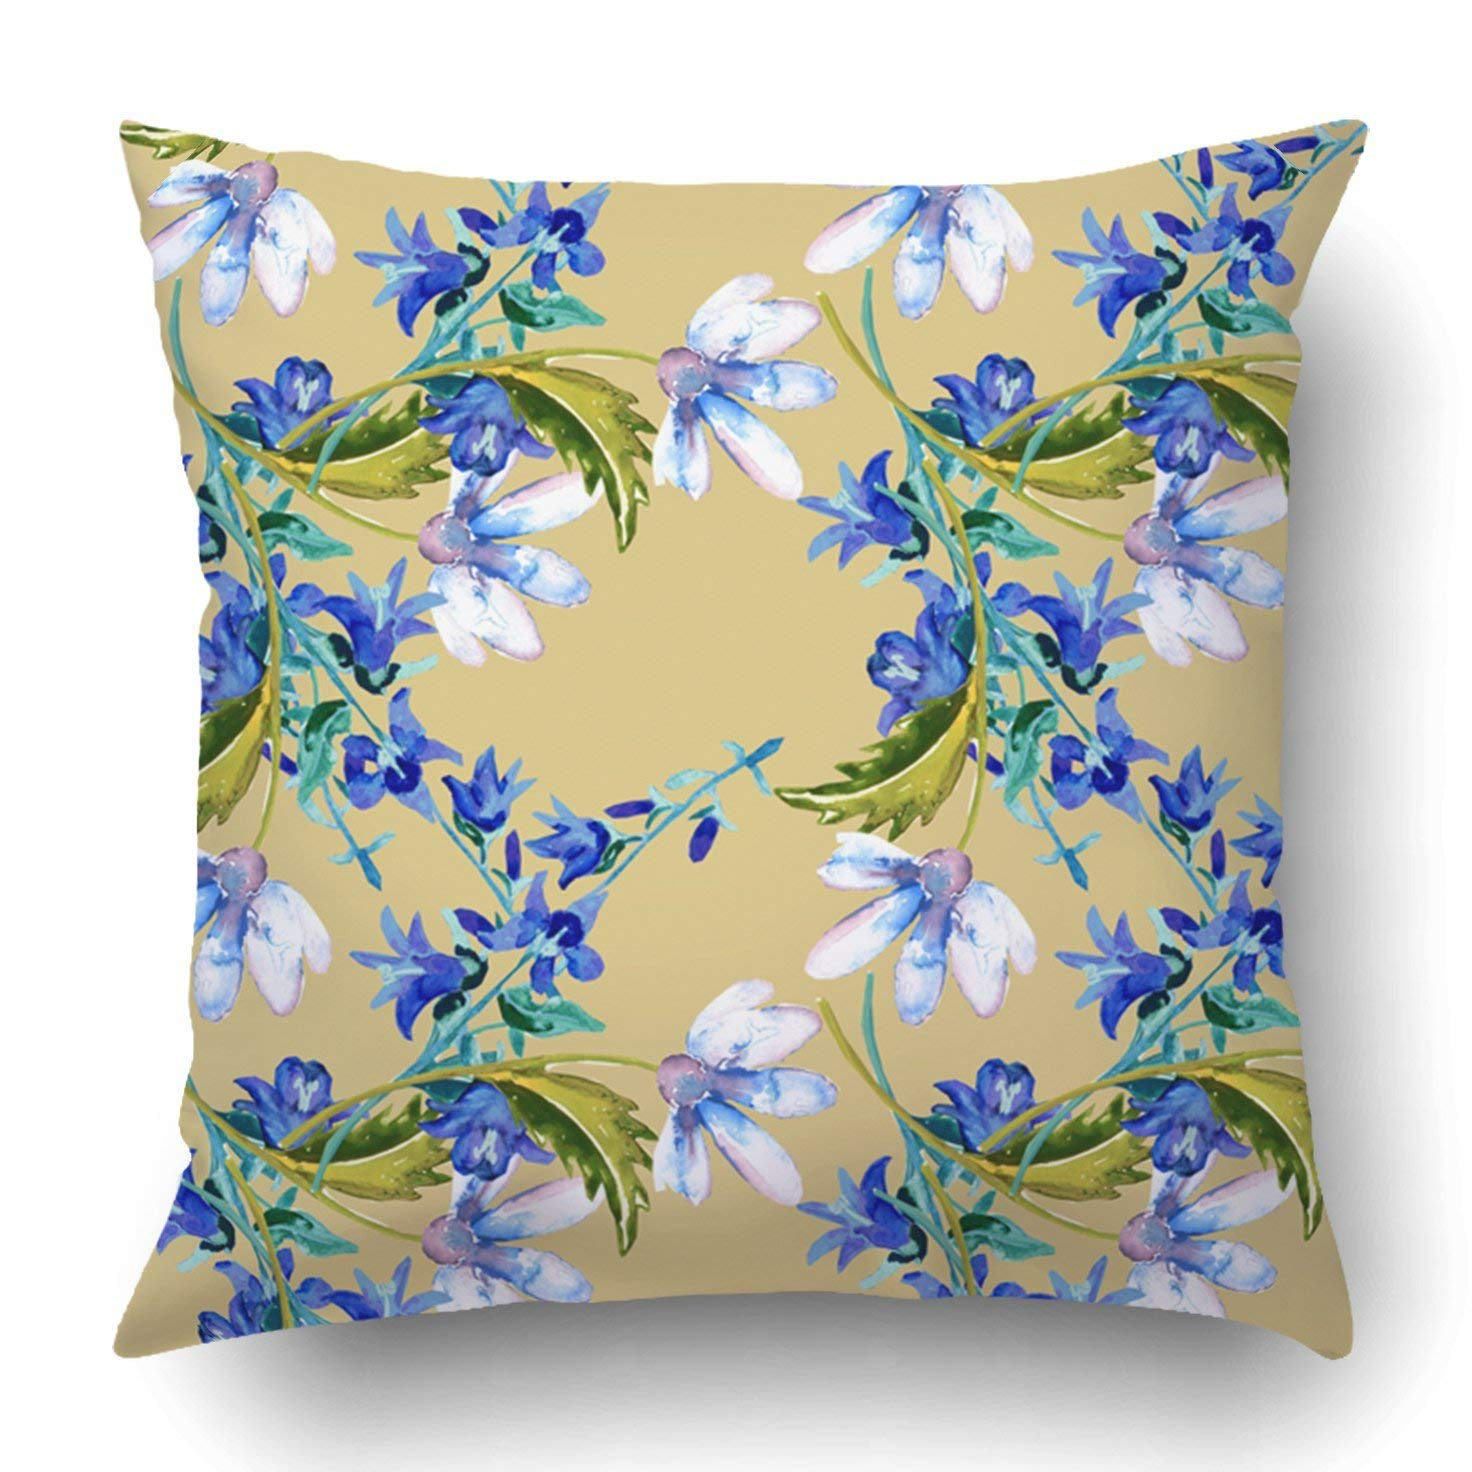 WOPOP Colorful Abstract Blue Summer Flowers Purple Birthday Bouquet Color Creative Pillowcase Cover Cushion 18x18 inch